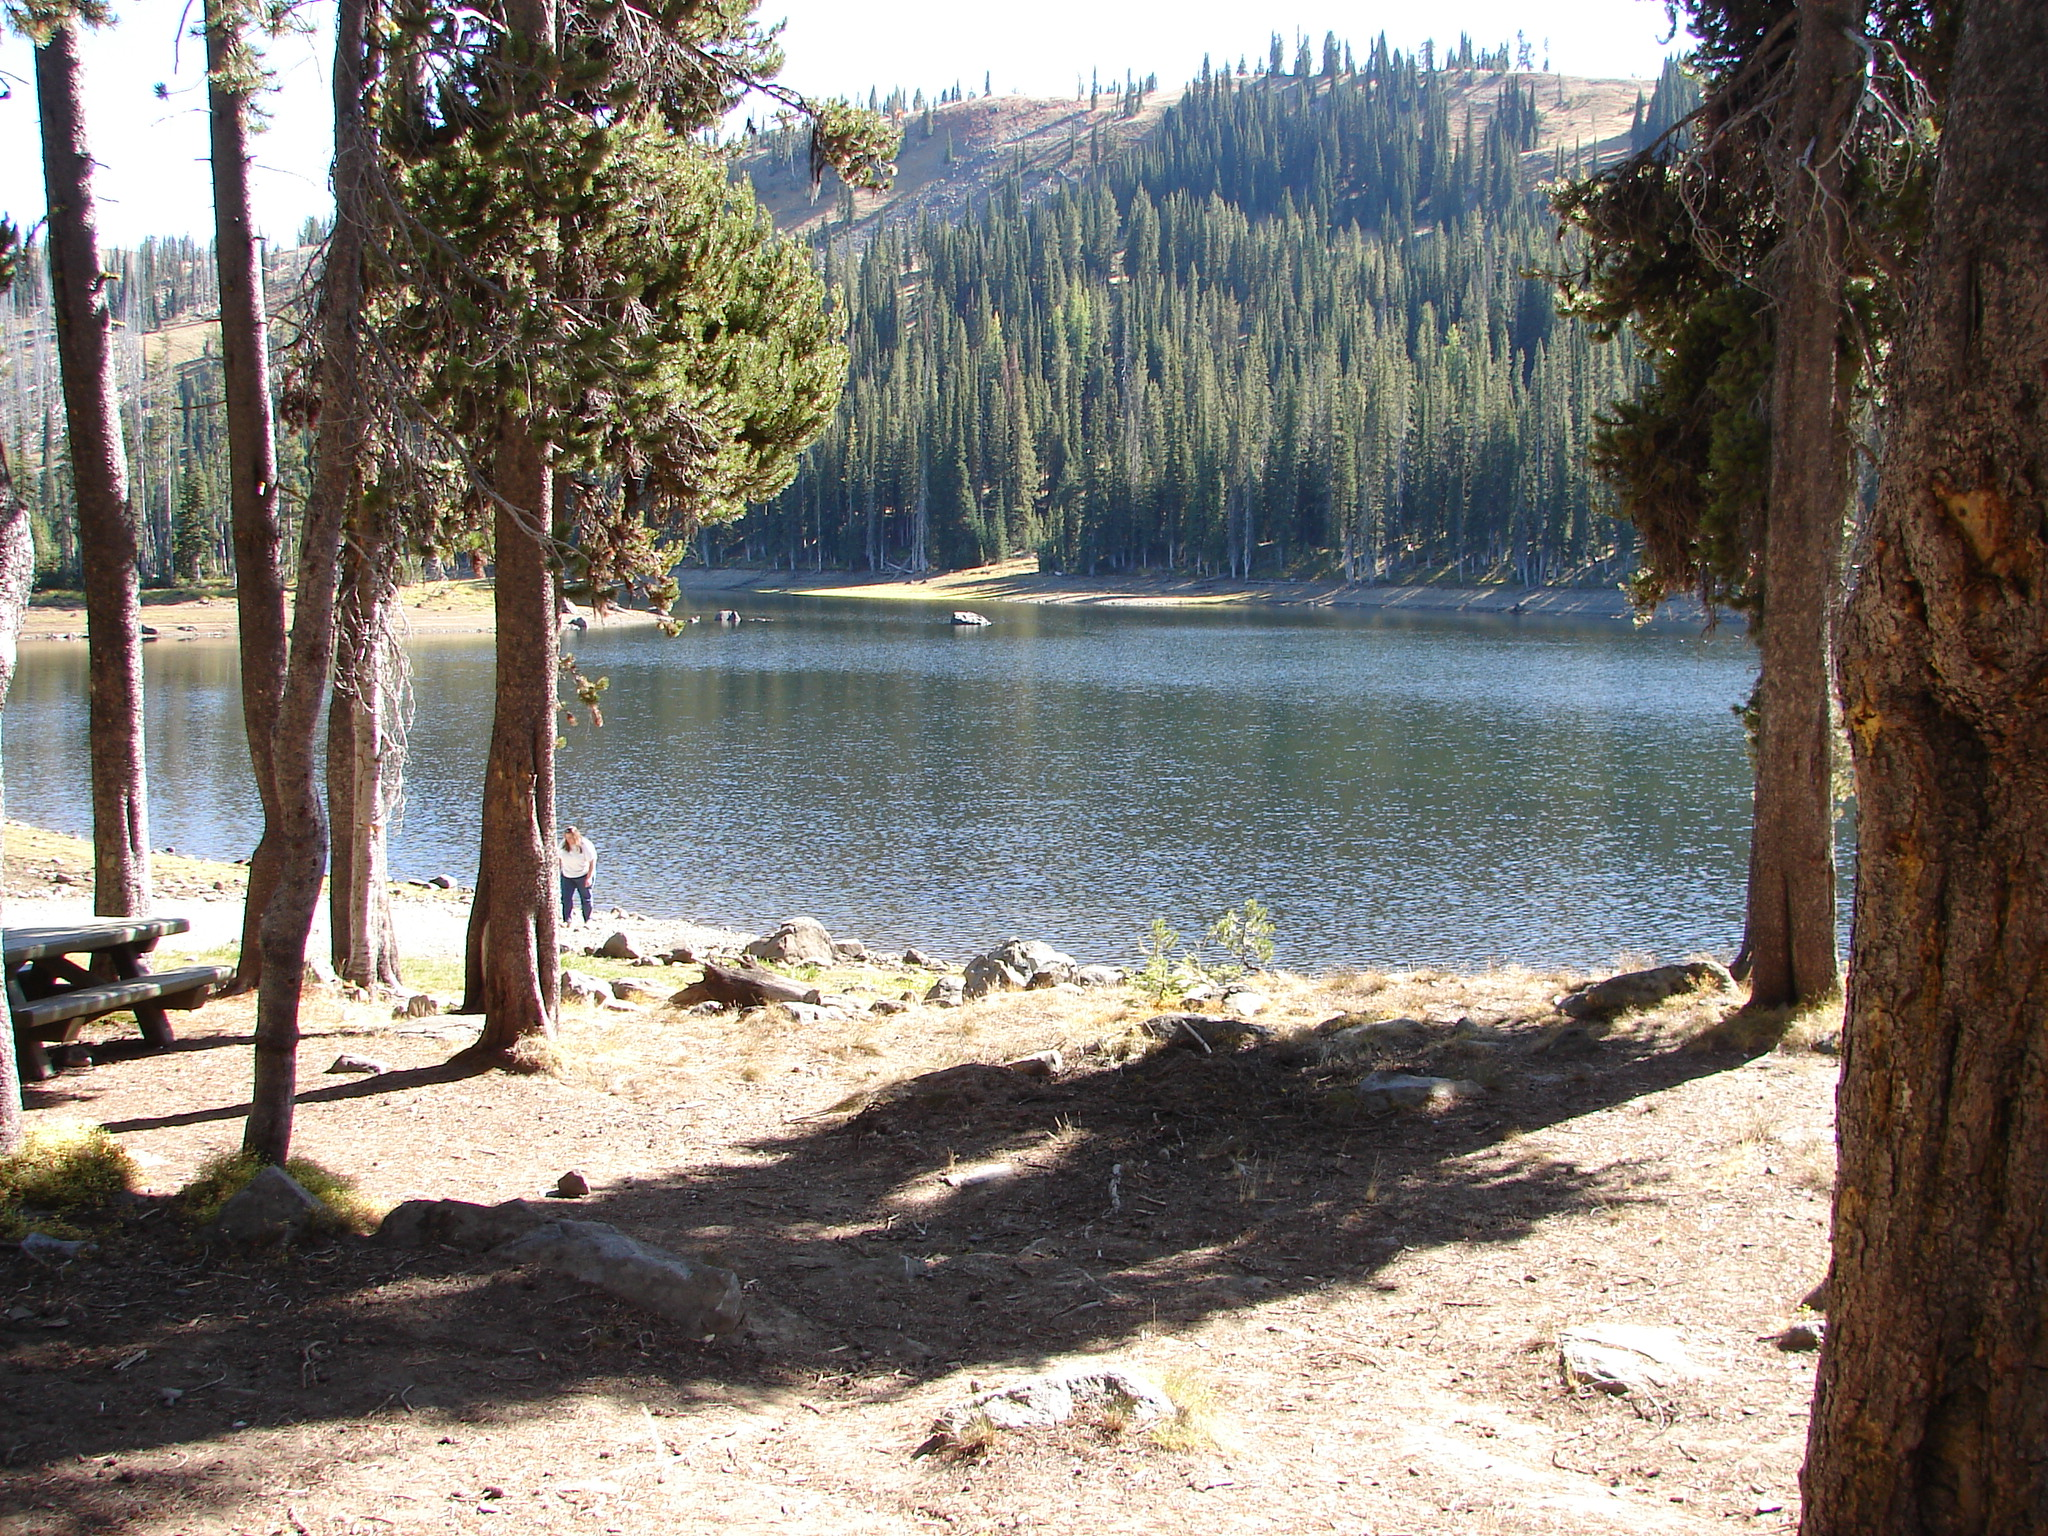 Hihg mountain Fish Lake surrounded by pine trees